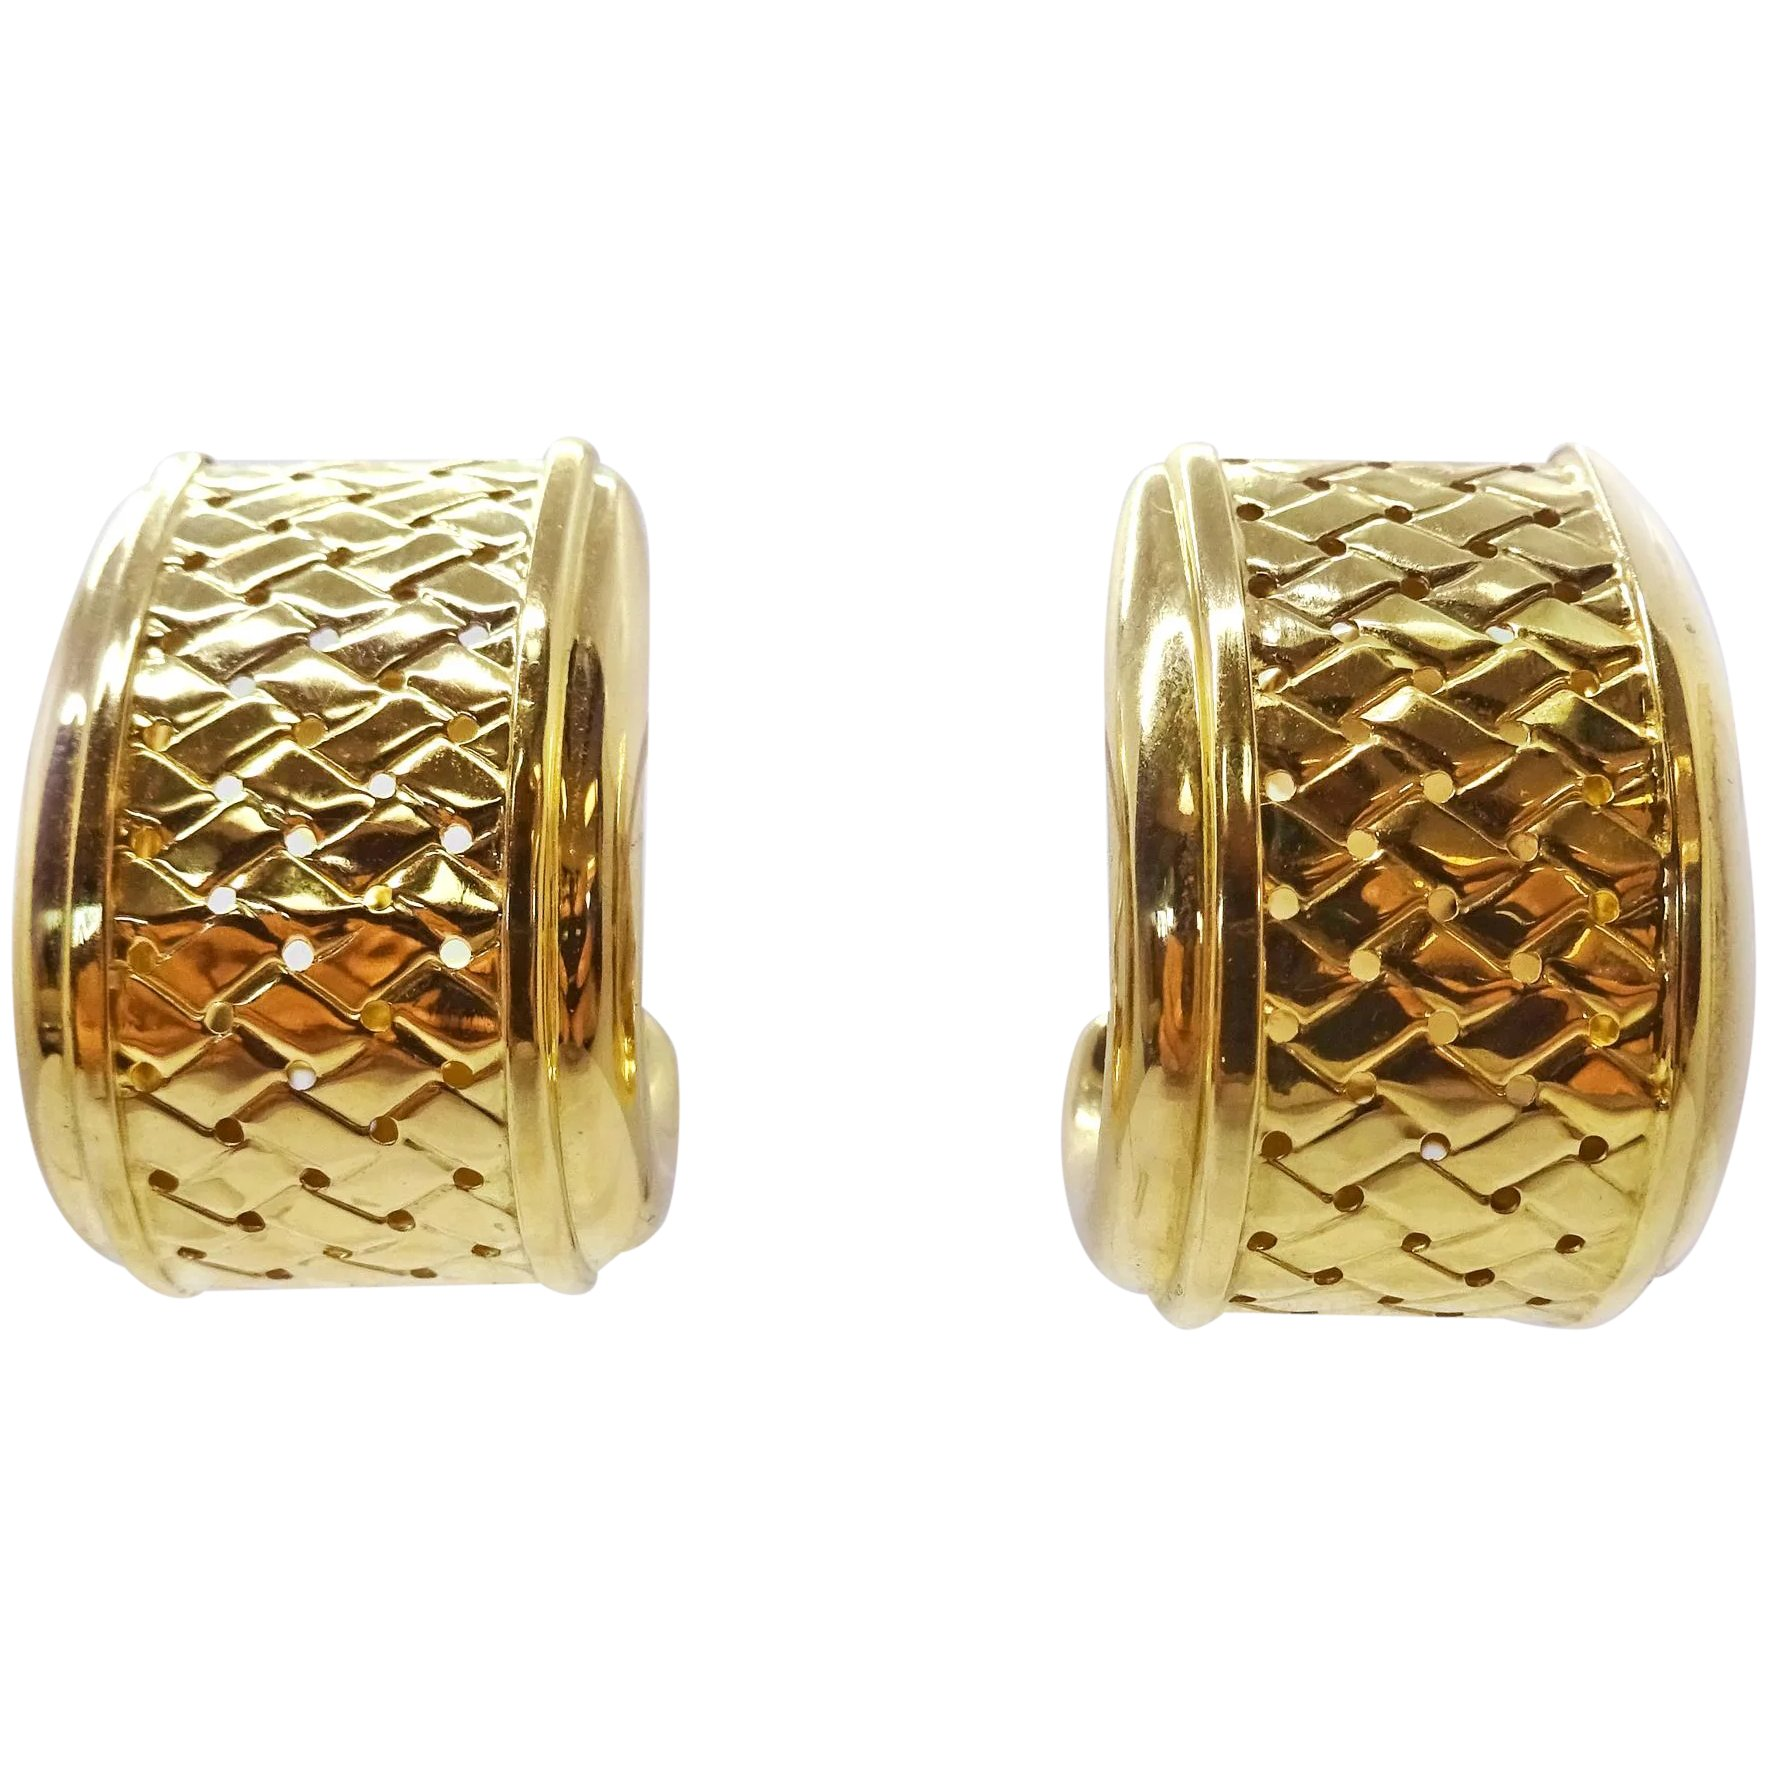 Italy Design Jewelry Estate Le Gi Italy 18k Solid Gold Woven Design Clip Earrings